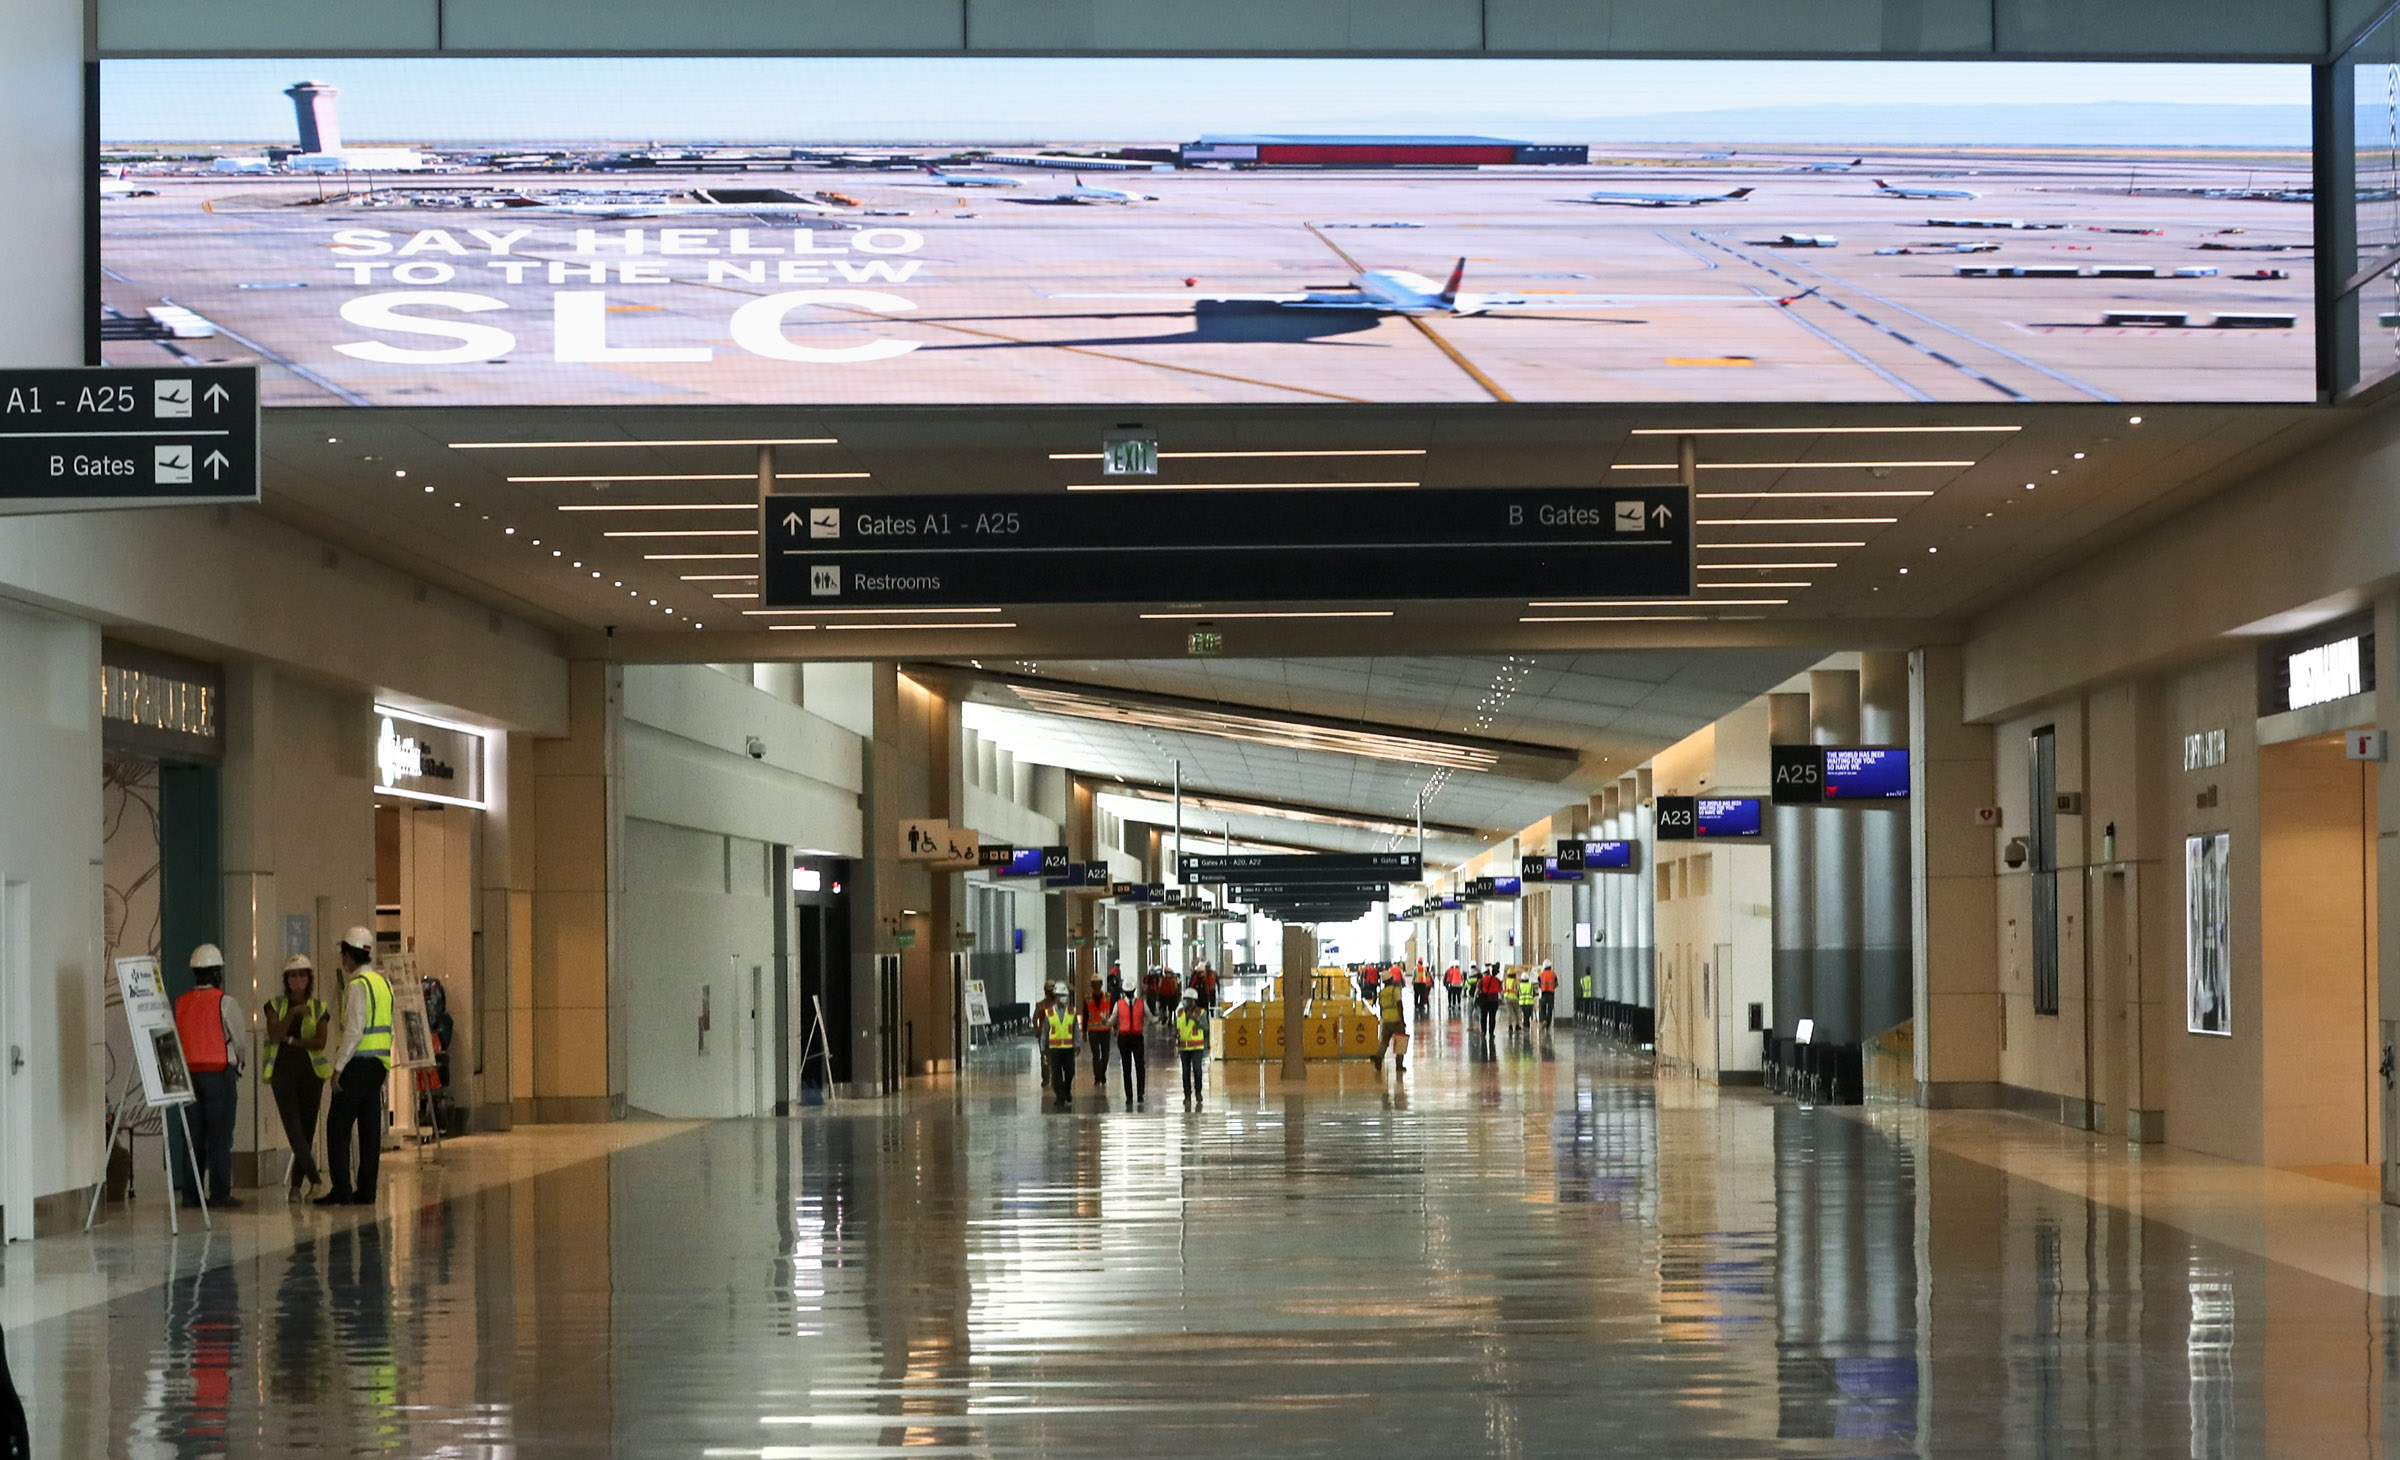 Members of the media and dignitaries tour the new Salt Lake City International Airport's main terminal in Salt Lake City on Thursday, Aug. 27, 2020.